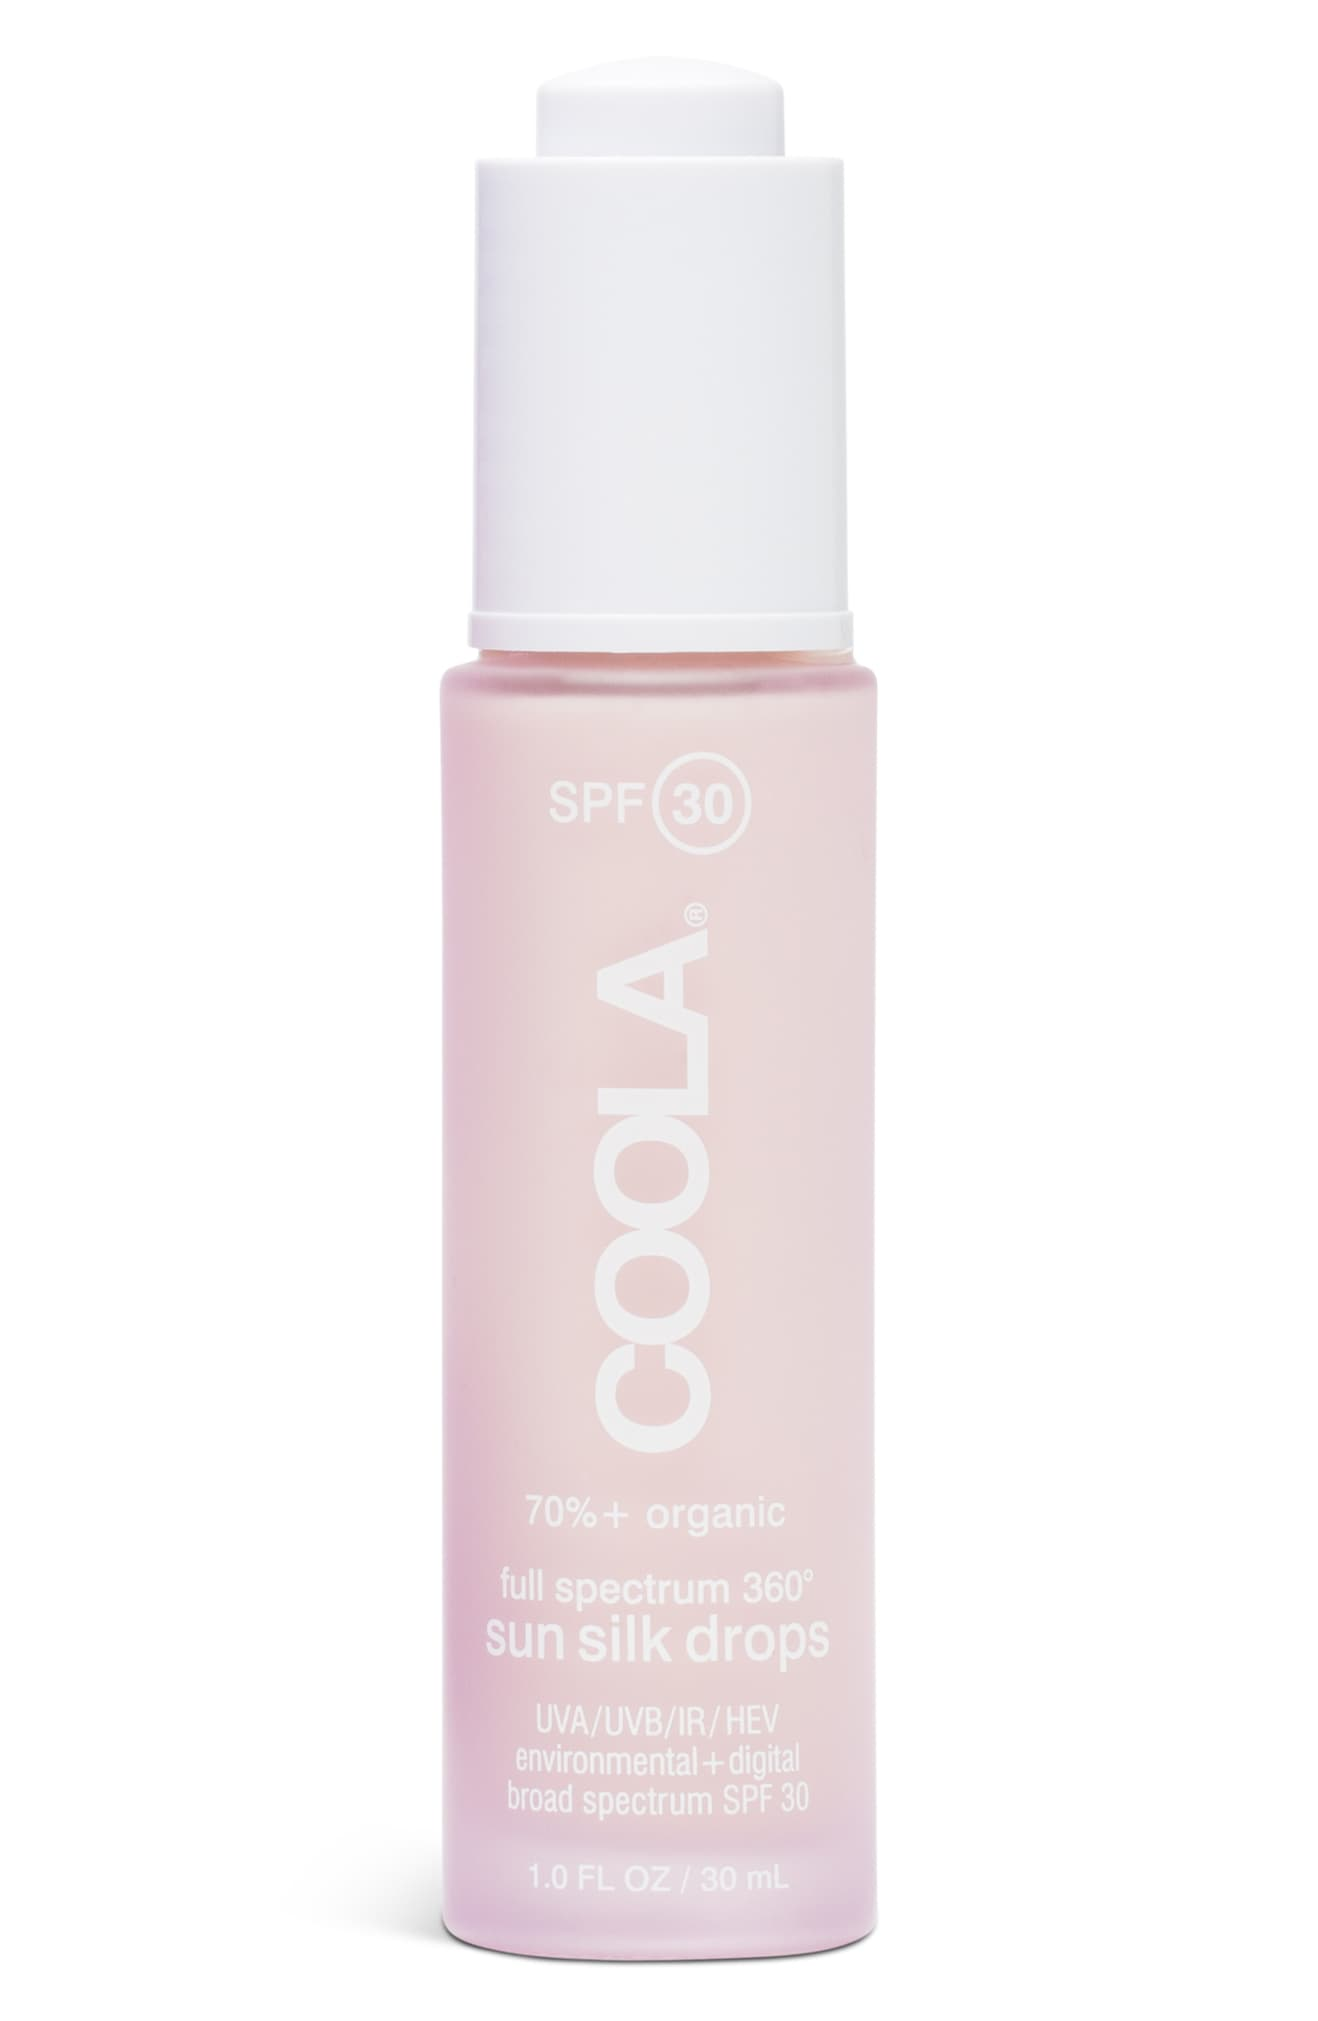 COOLA® Suncare Full Spectrum 360 Sun Silk Drops Spf 30